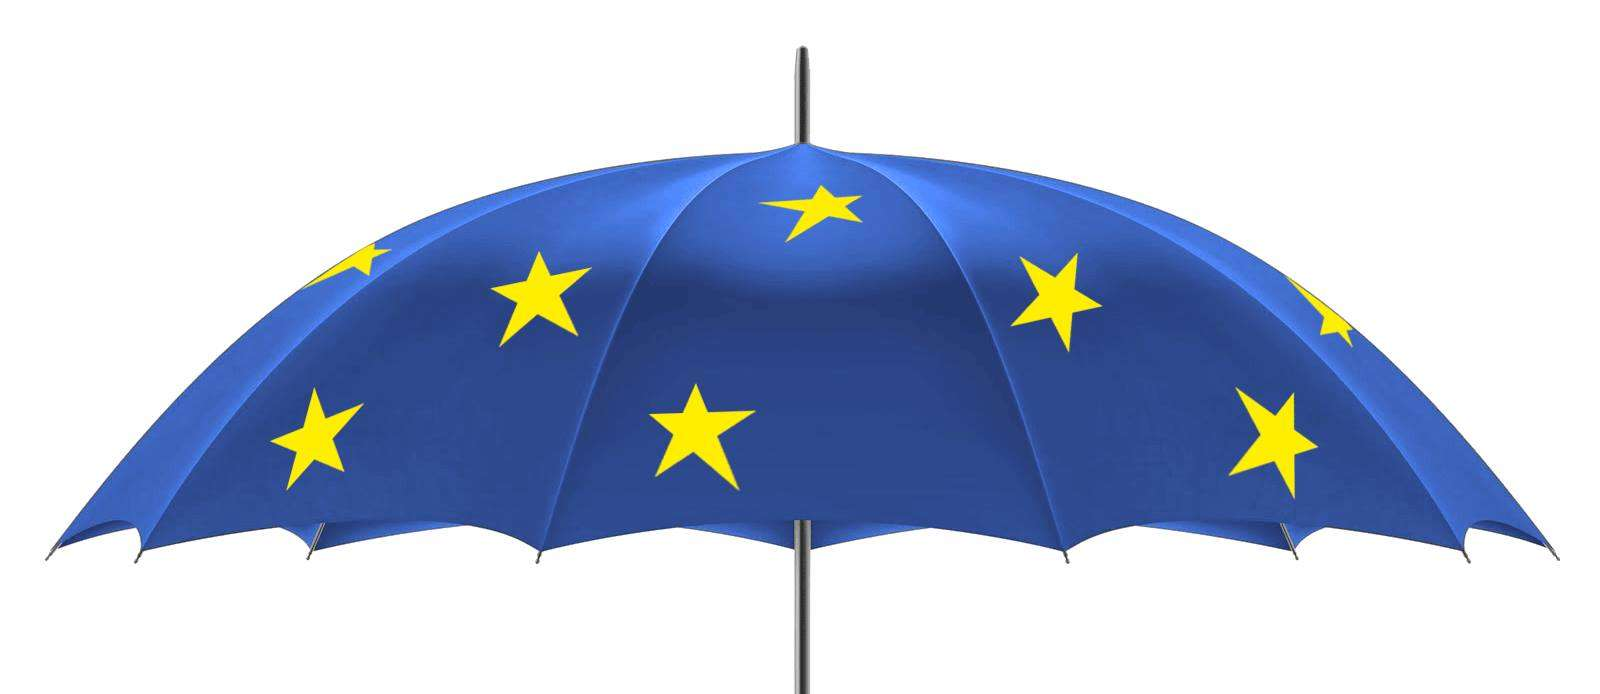 While President Obama signs the Judicial Redress act, are the European Commission and the Parliament sharing the same Umbrella?